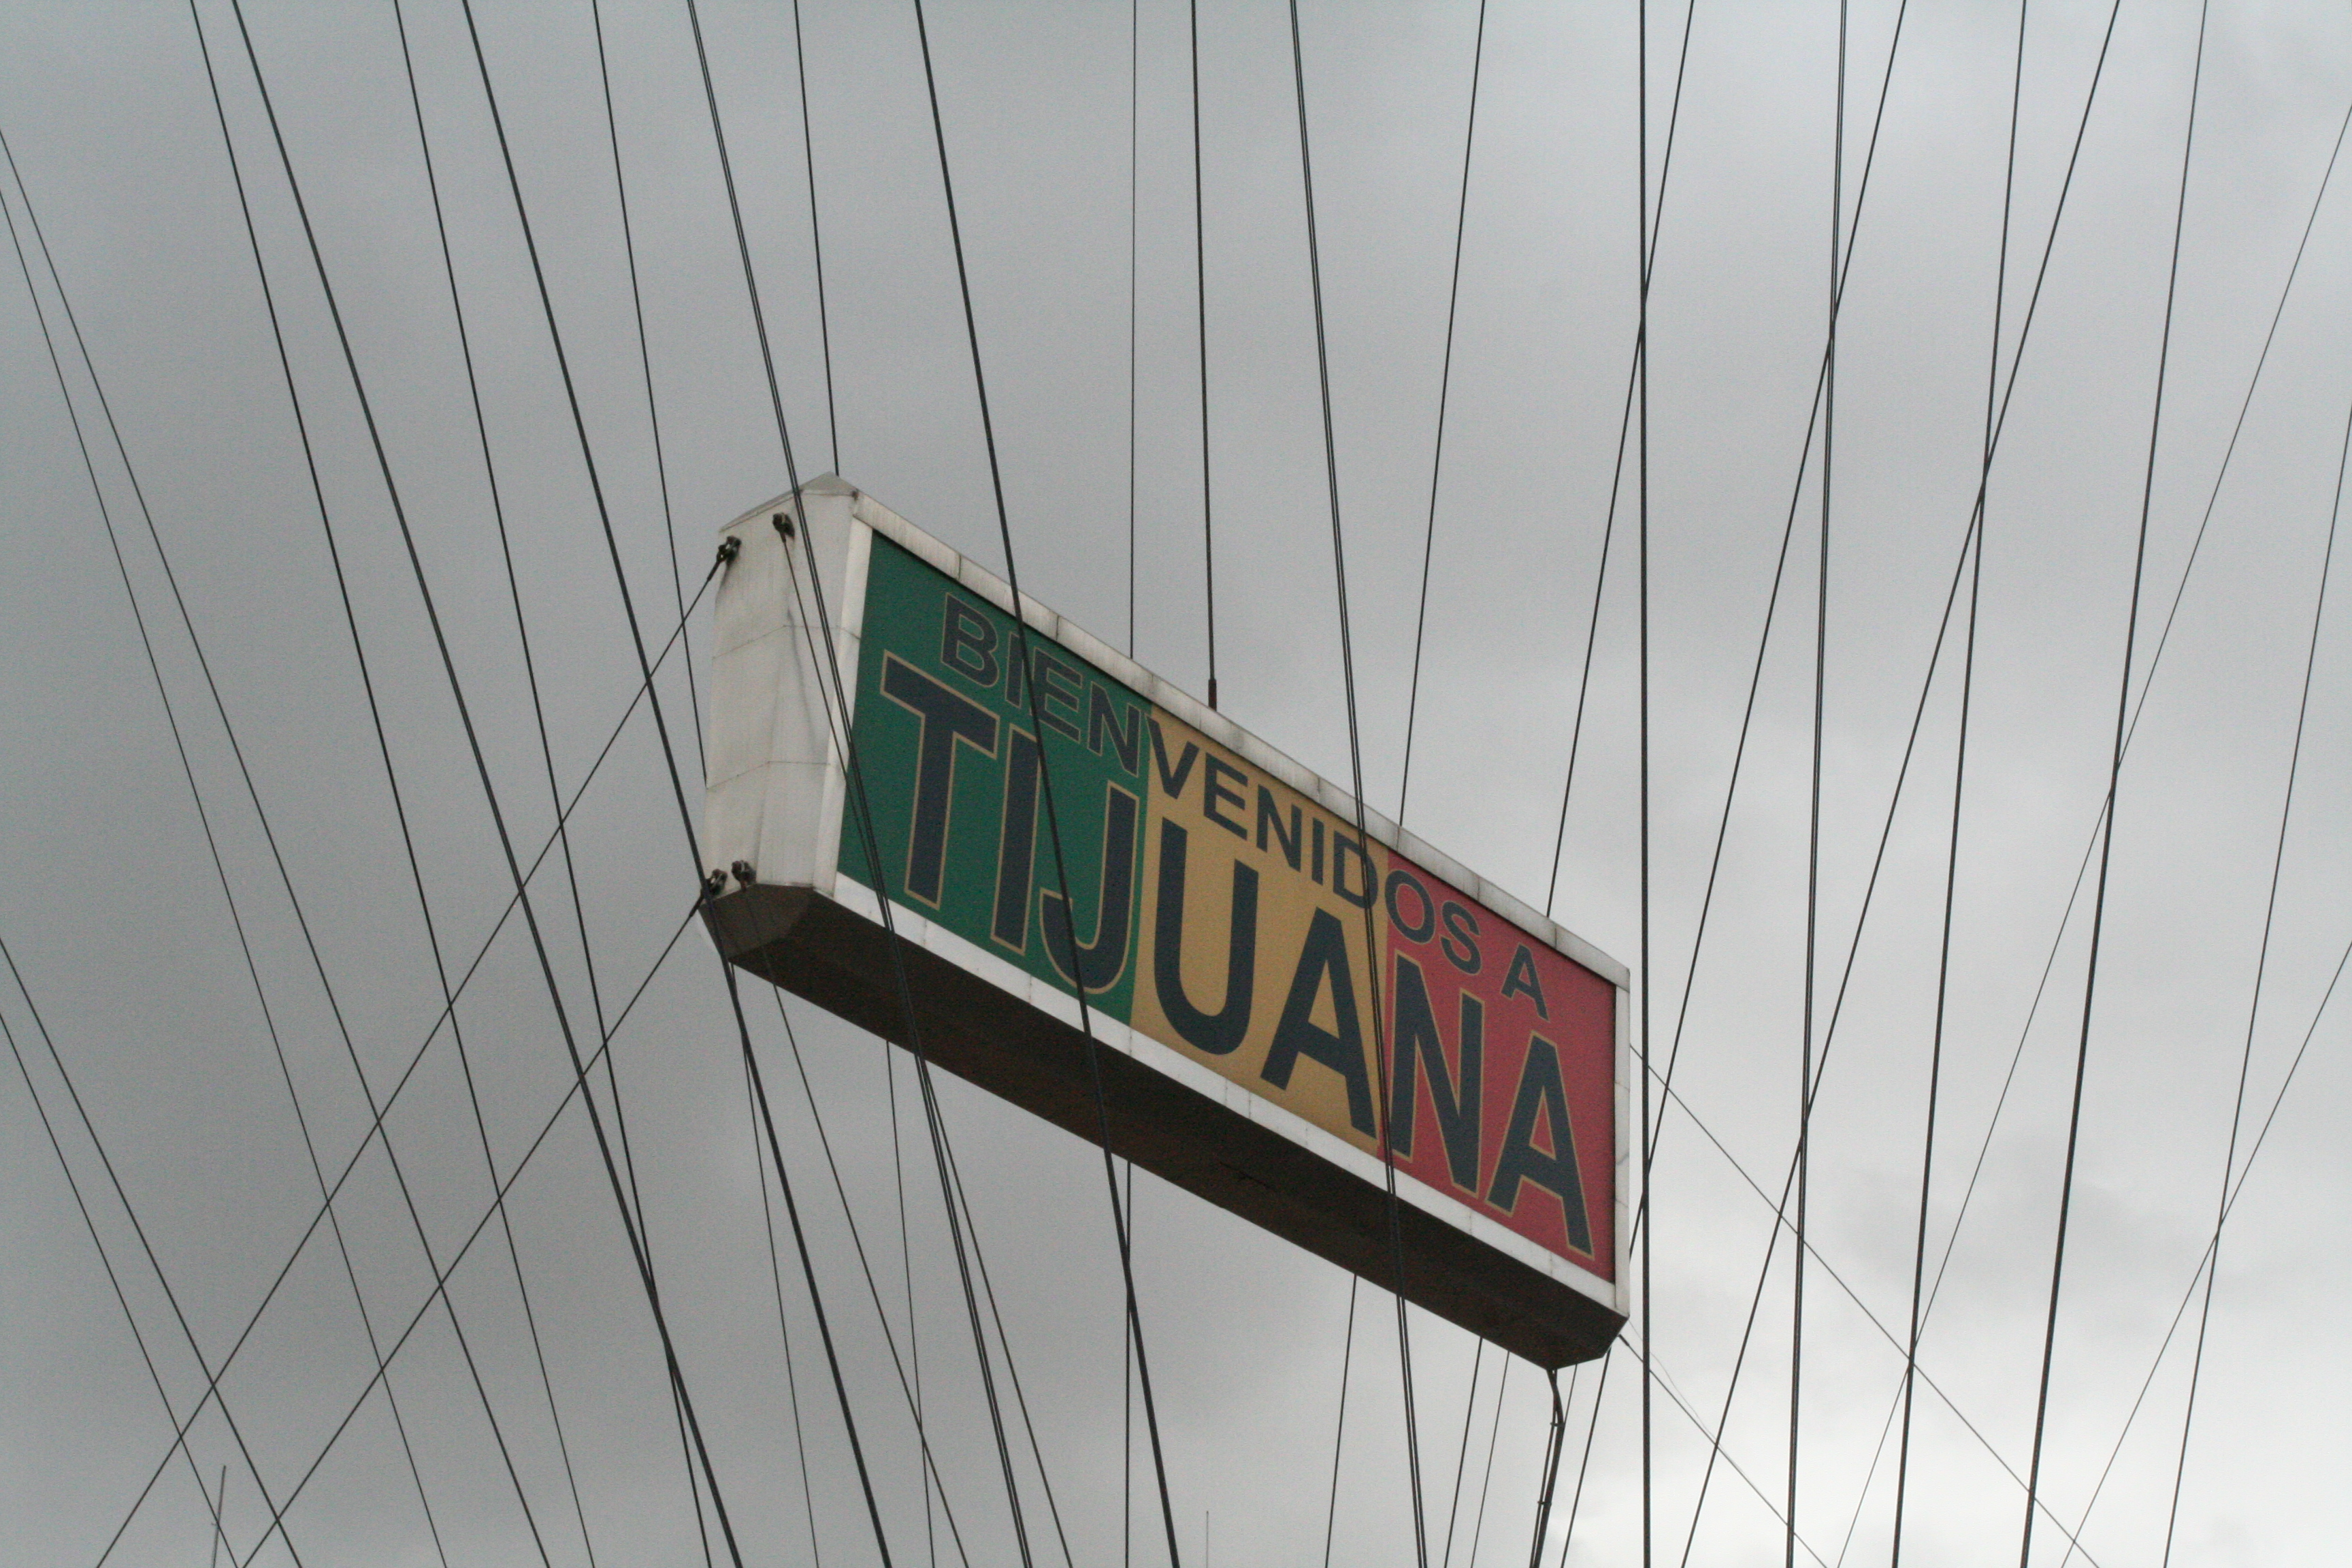 dating in tijuana mexico Tijuana (/ t iː ˈ hw ɑː n ə / tee-whah-nə spanish: ) is the largest city in the mexican state of baja california and on the baja california peninsula, located at the center of the tijuana and the international san diego–tijuana metropolitan areas.